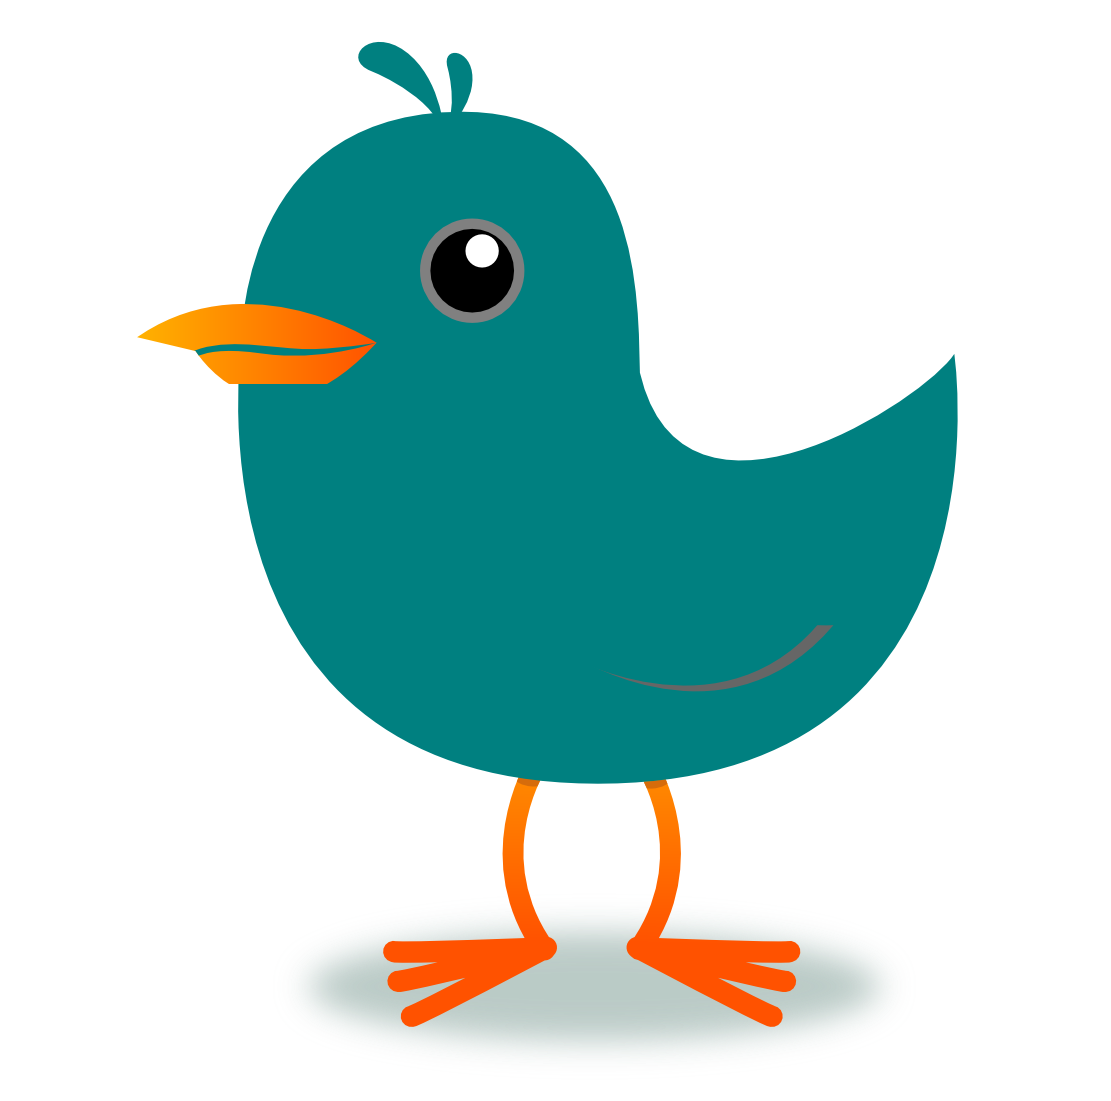 Teal clipart Clipart Free Images Clipart Tweet